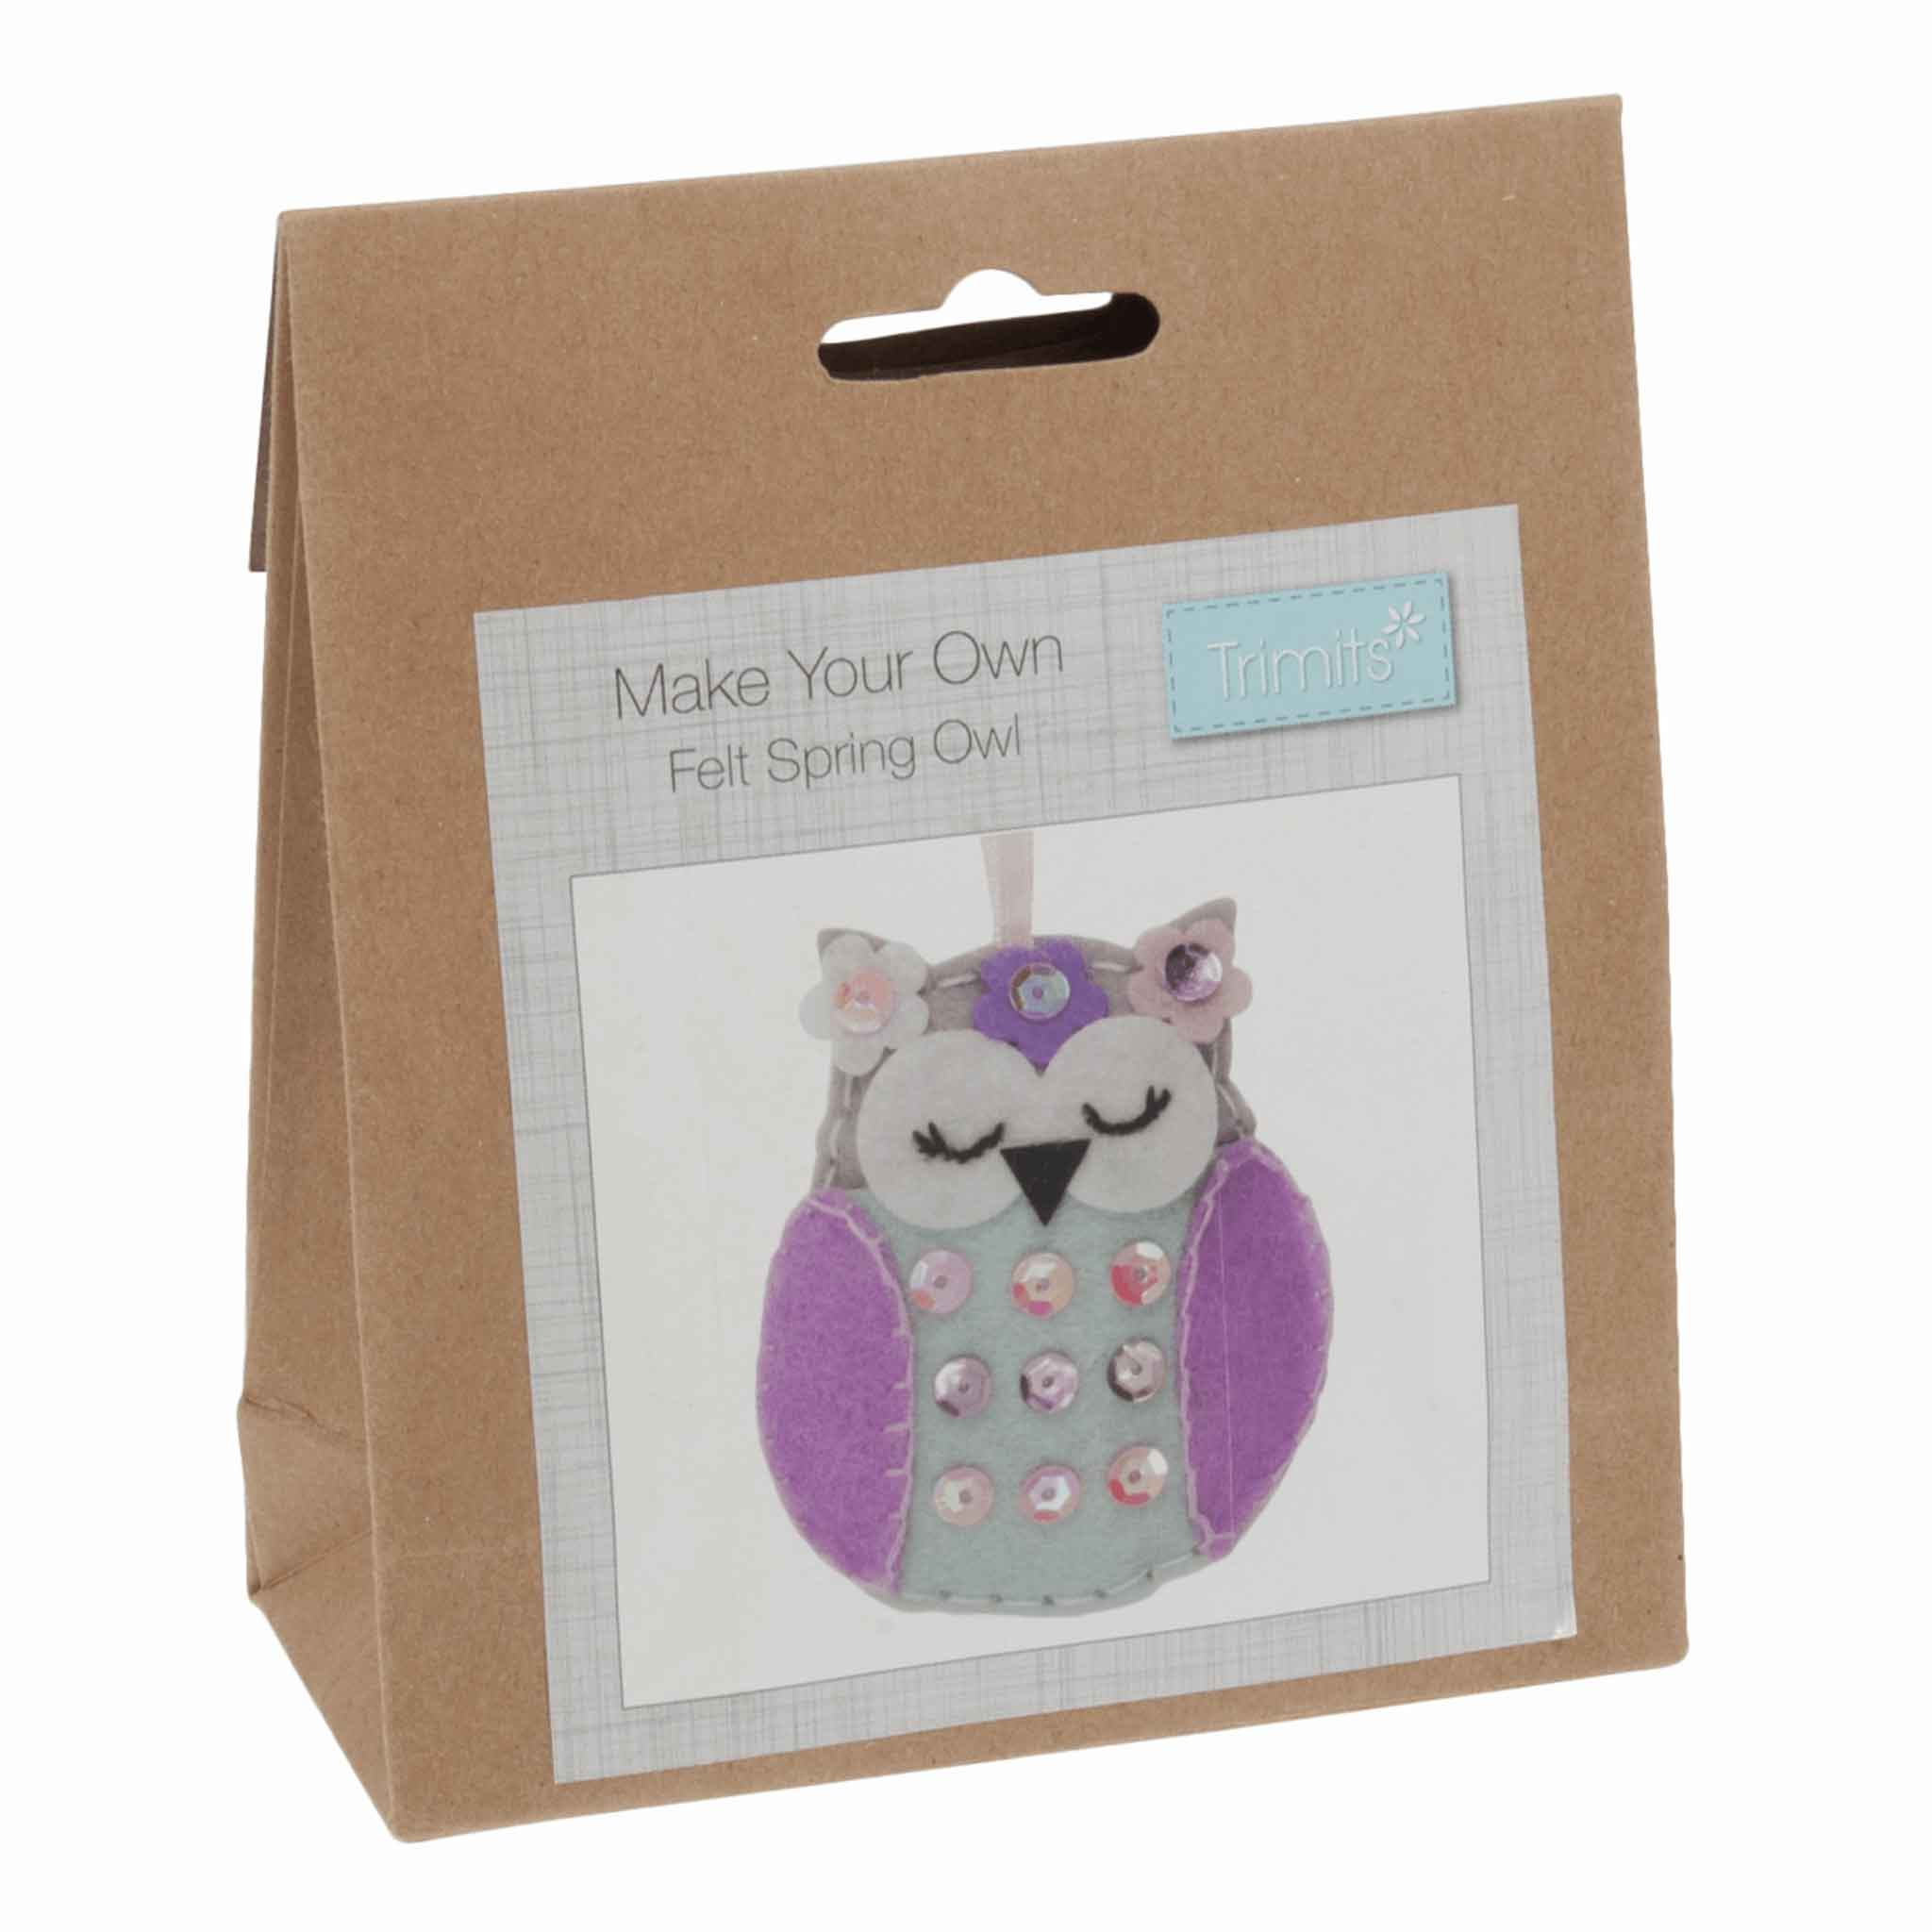 Felt Spring Owl Kit, Make Your Own Owl, GCK037 - Fabric and Ribbon